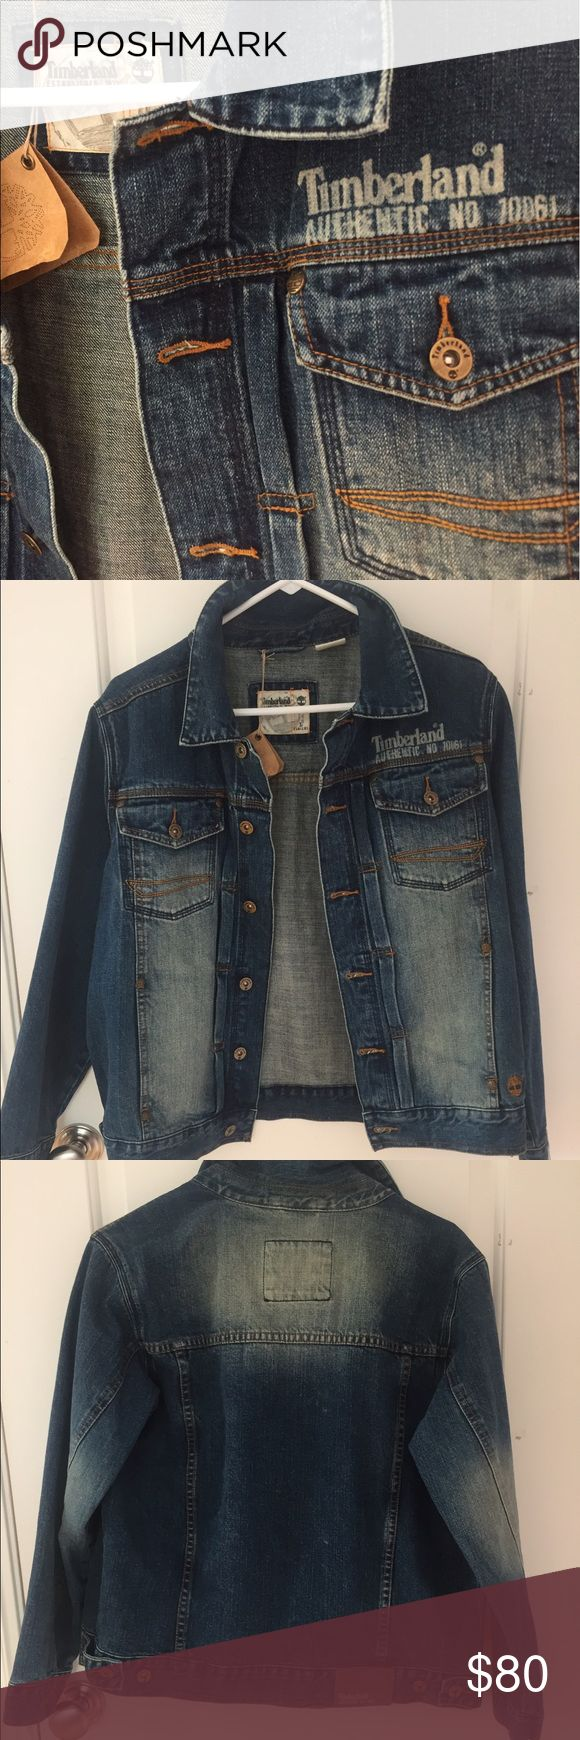 Timberland Jean jacket Never been worn! Tags attached! In absolutely perfect condition!!! Timberland Jackets & Coats Jean Jackets